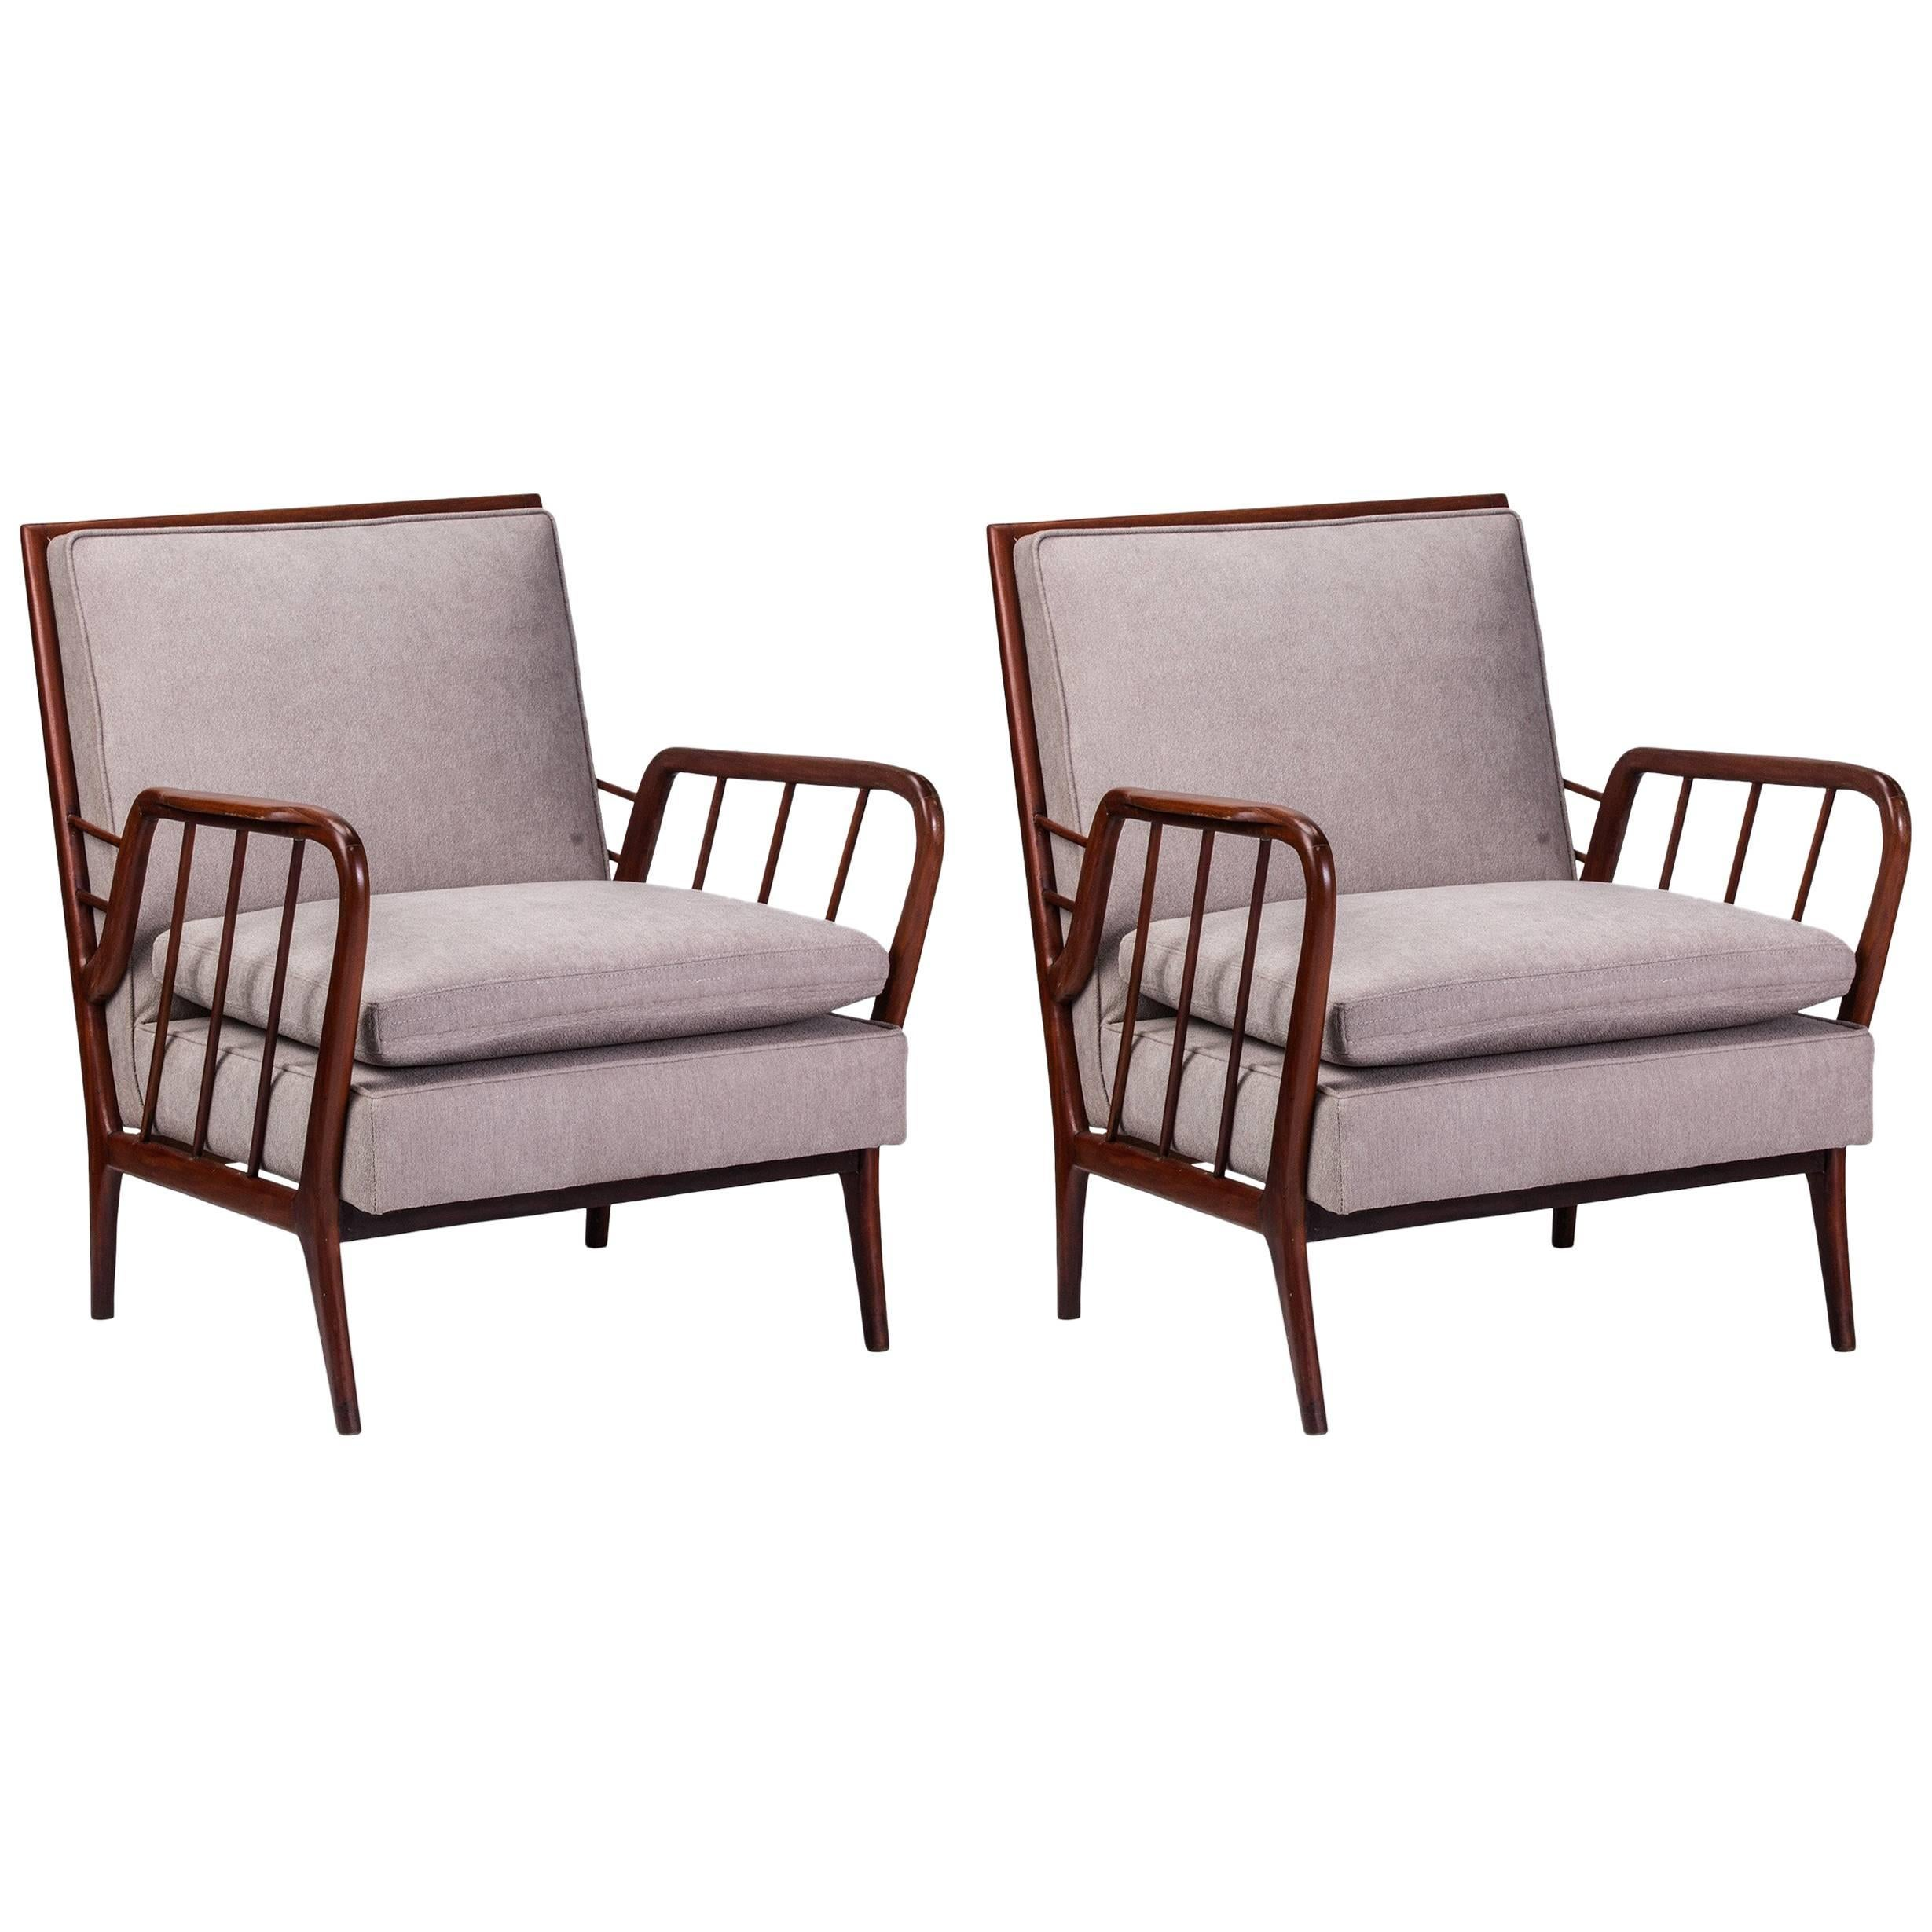 1950s Pair of Armchairs